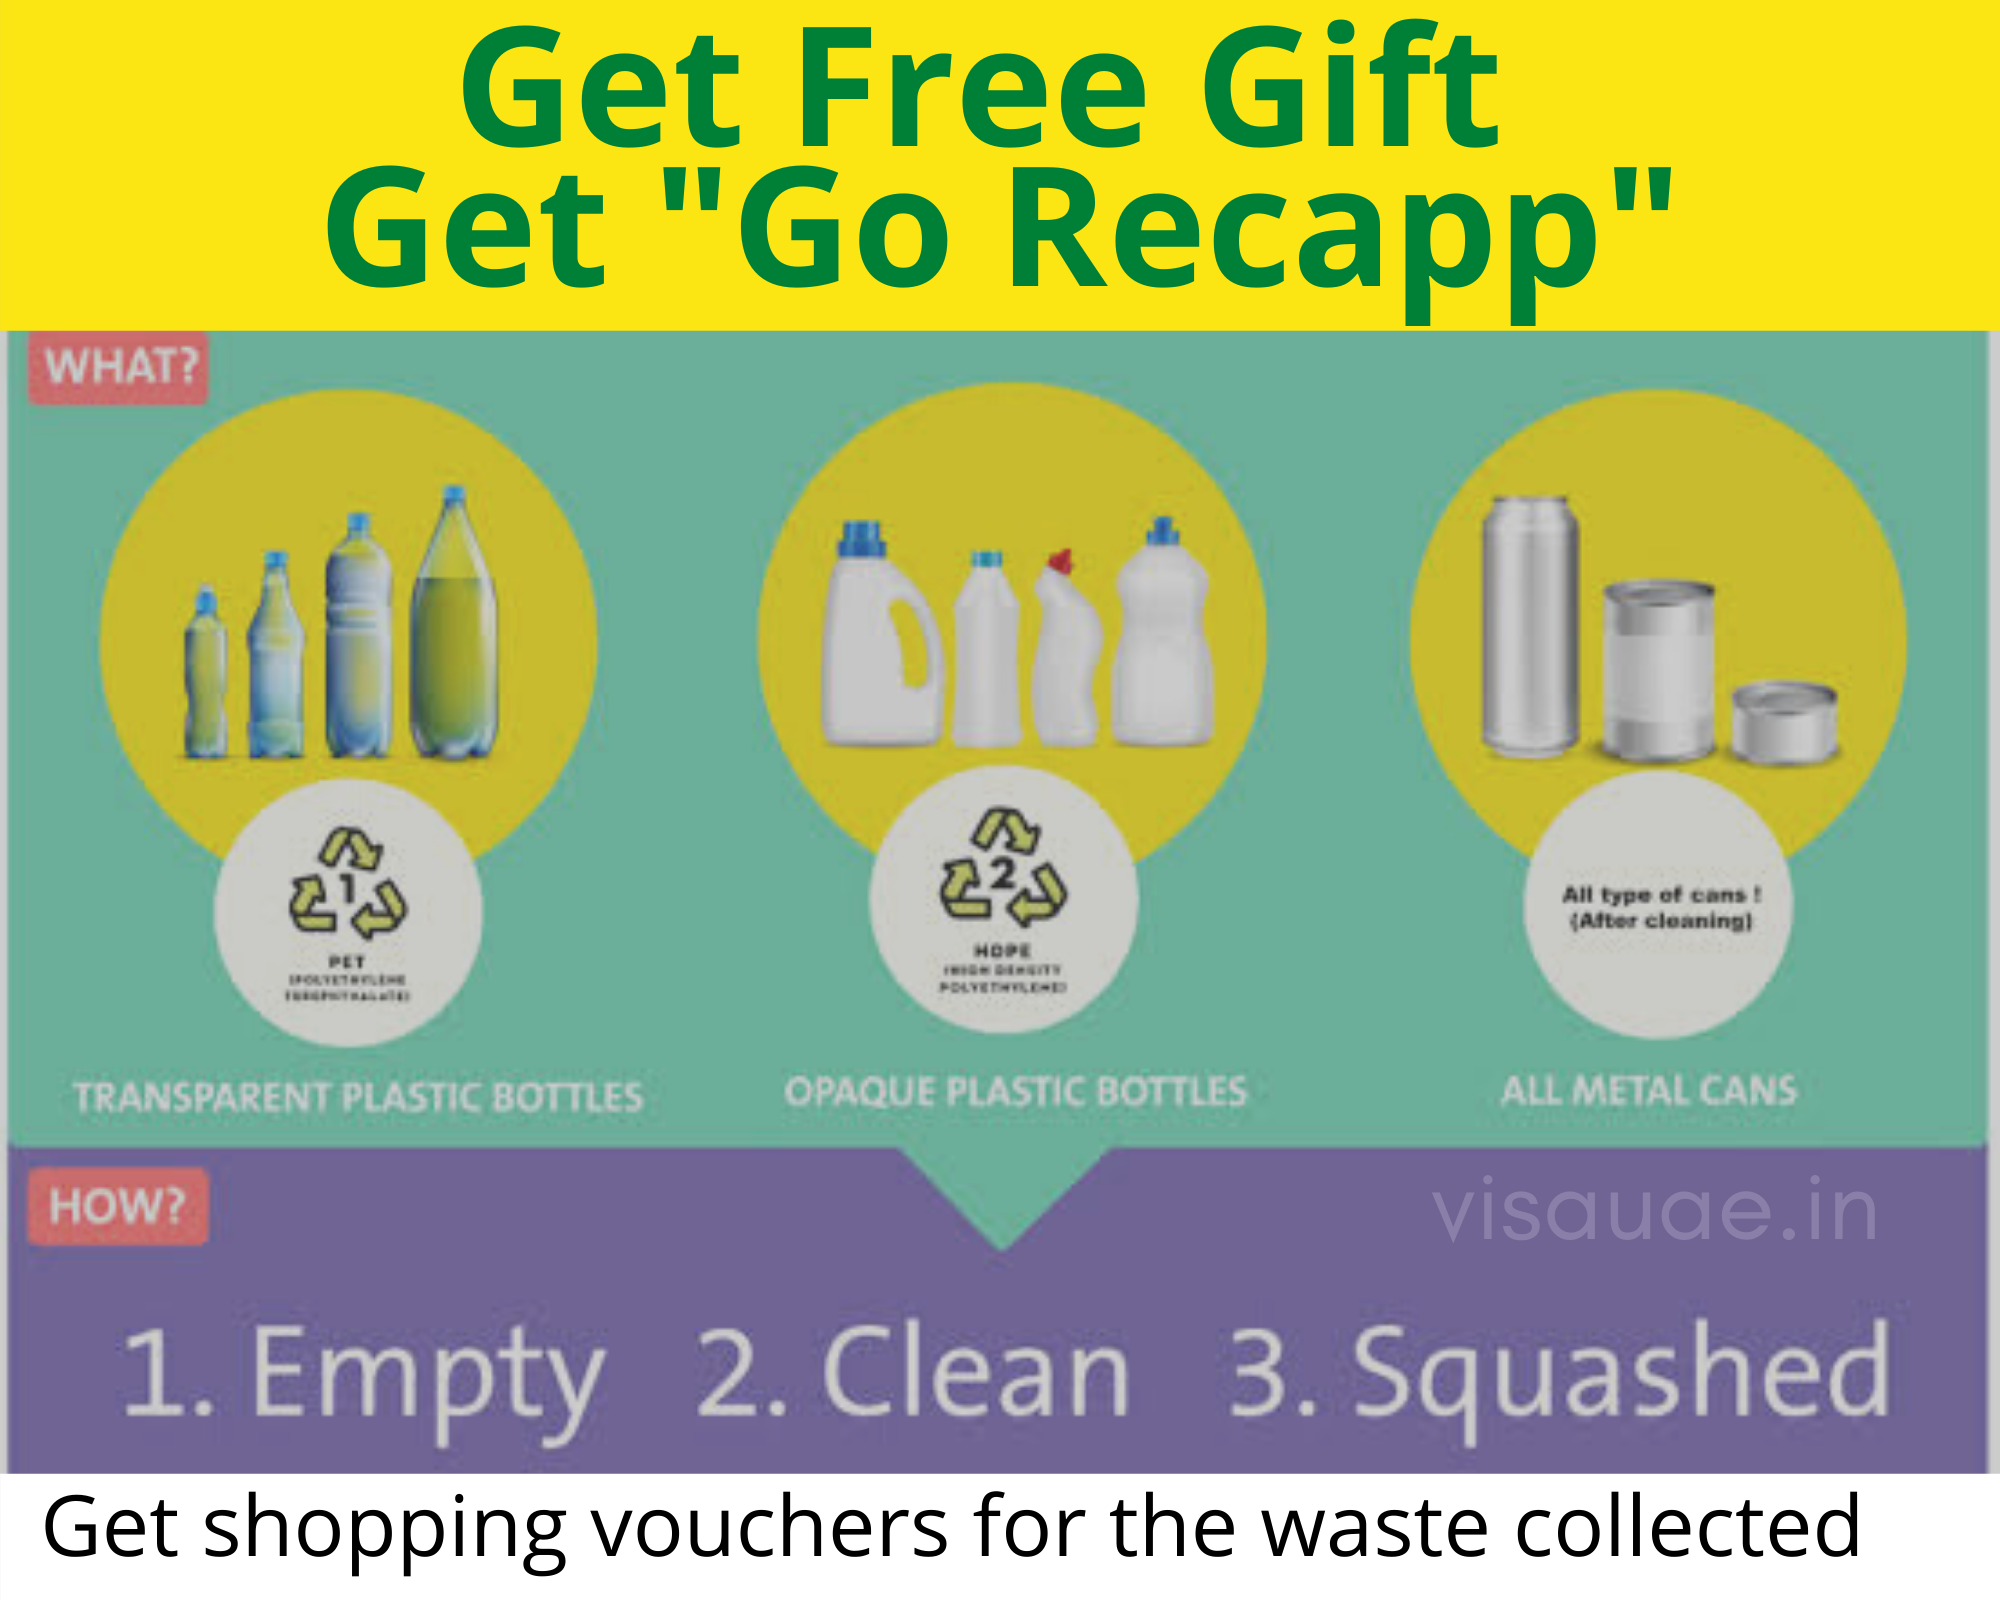 Free gifts with Go Recapp veolia uae campaign